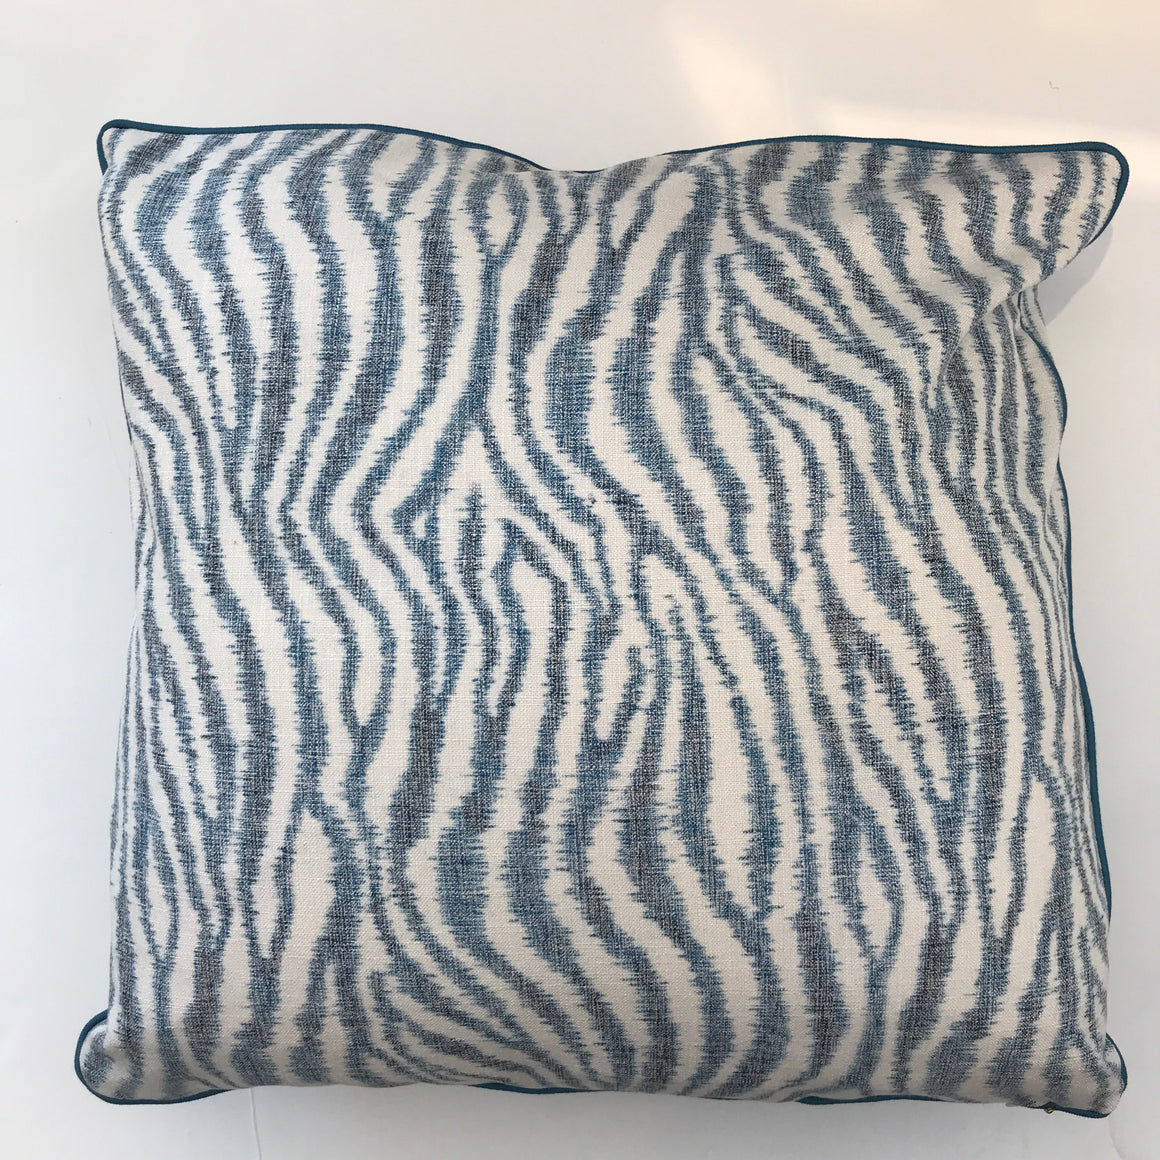 A.  BAILEY PILLOW - Blue and White Pattern- 23 x 23-